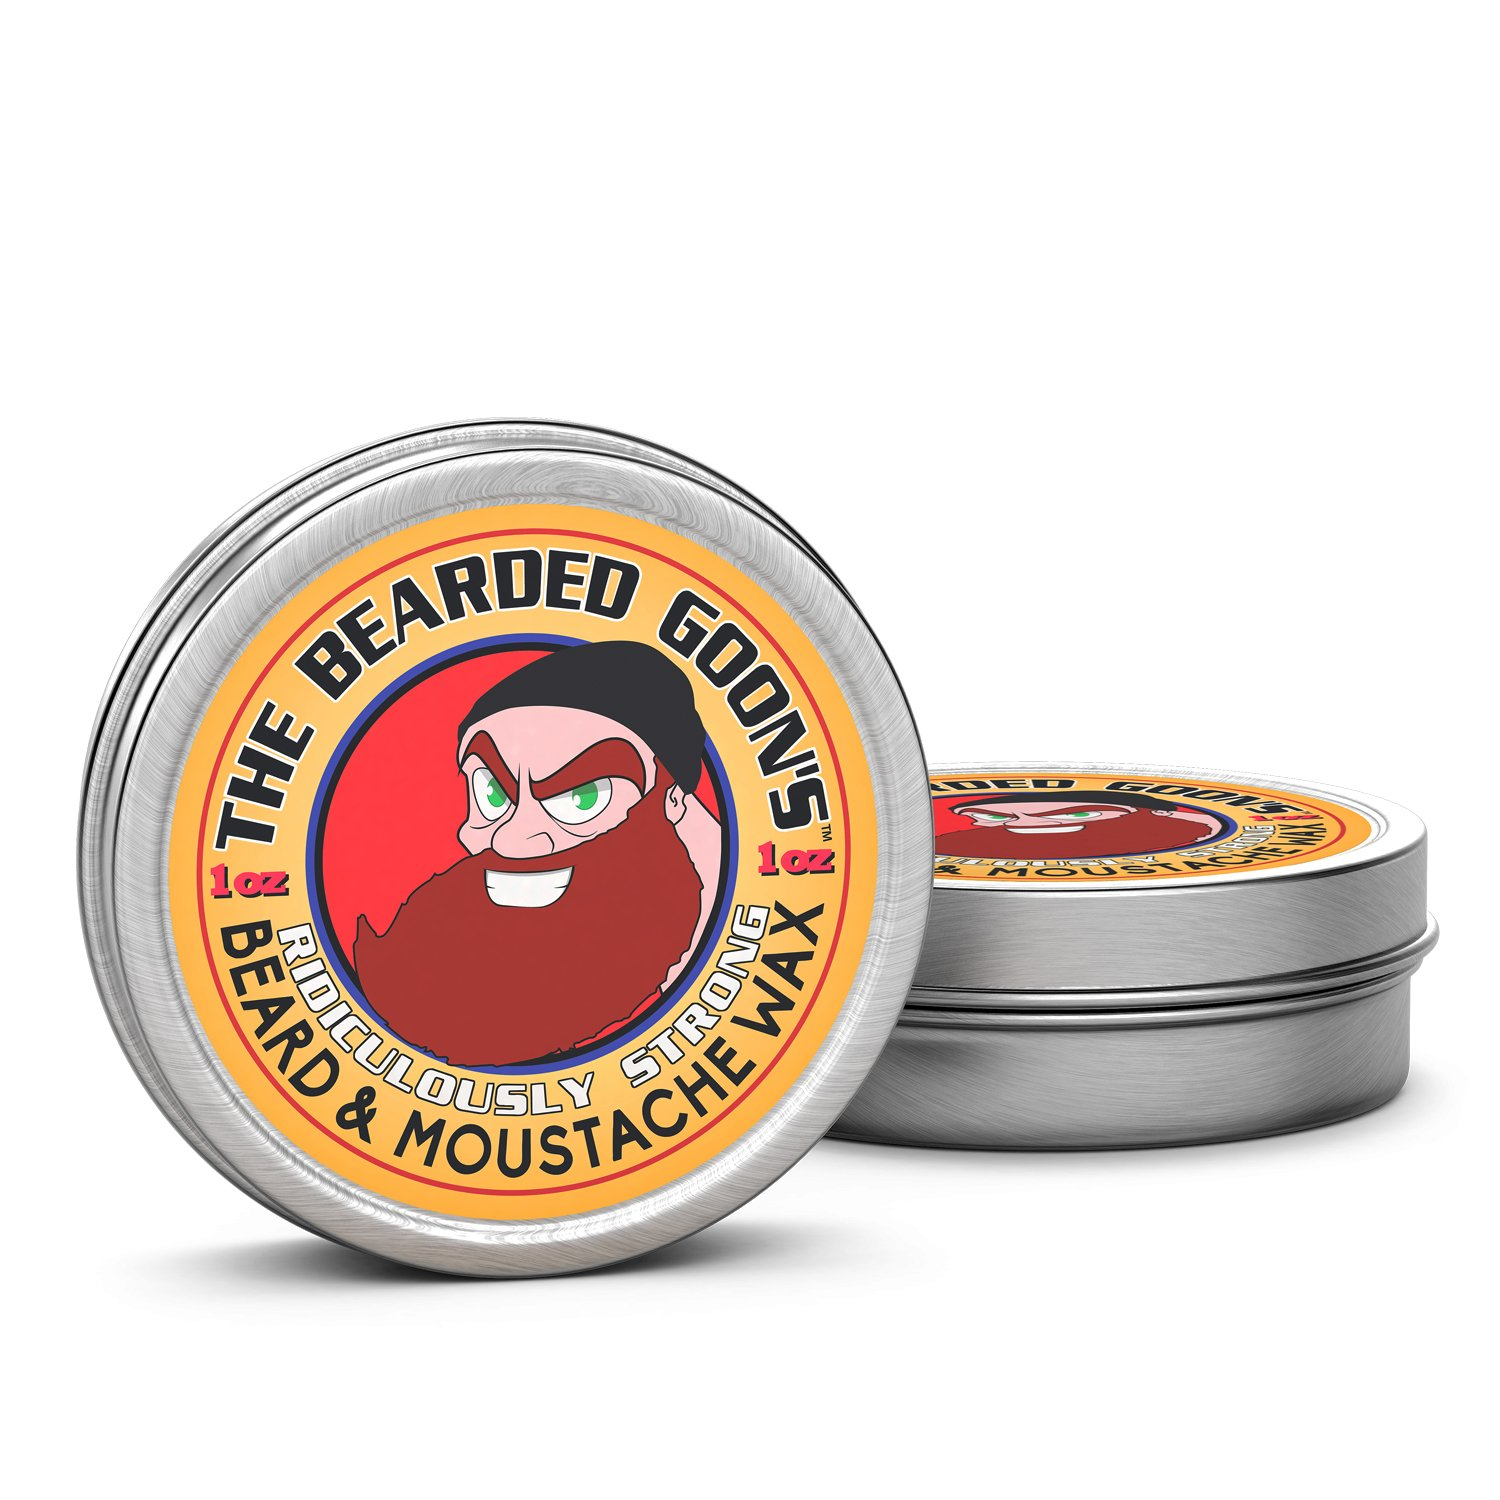 The Bearded Goon's Mustache and Beard Wax - 100% Natural, Ridiculously Strong, All-Day Styling Control with Ultra-Strong Hold, Mild Scent, Free of Chemicals, Alcohol and Parabens, 1 oz., 2 Tins